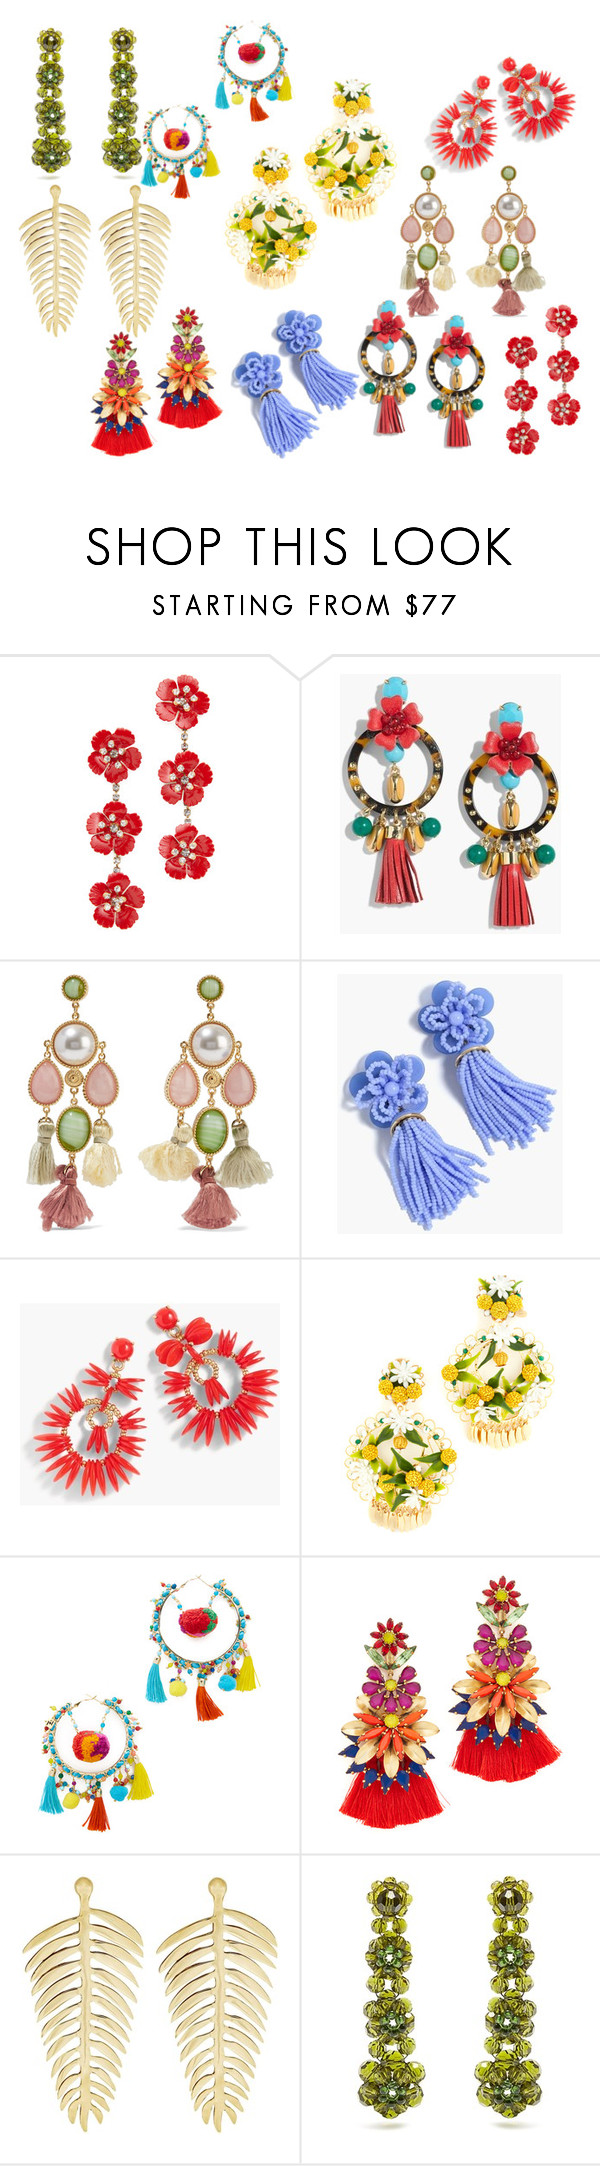 """Untitled #11"" by andrea-noches on Polyvore featuring Jennifer Behr, J.Crew, Ben-Amun, Mercedes Salazar, Rosantica, Elizabeth Cole, Anna + Nina and Simone Rocha"